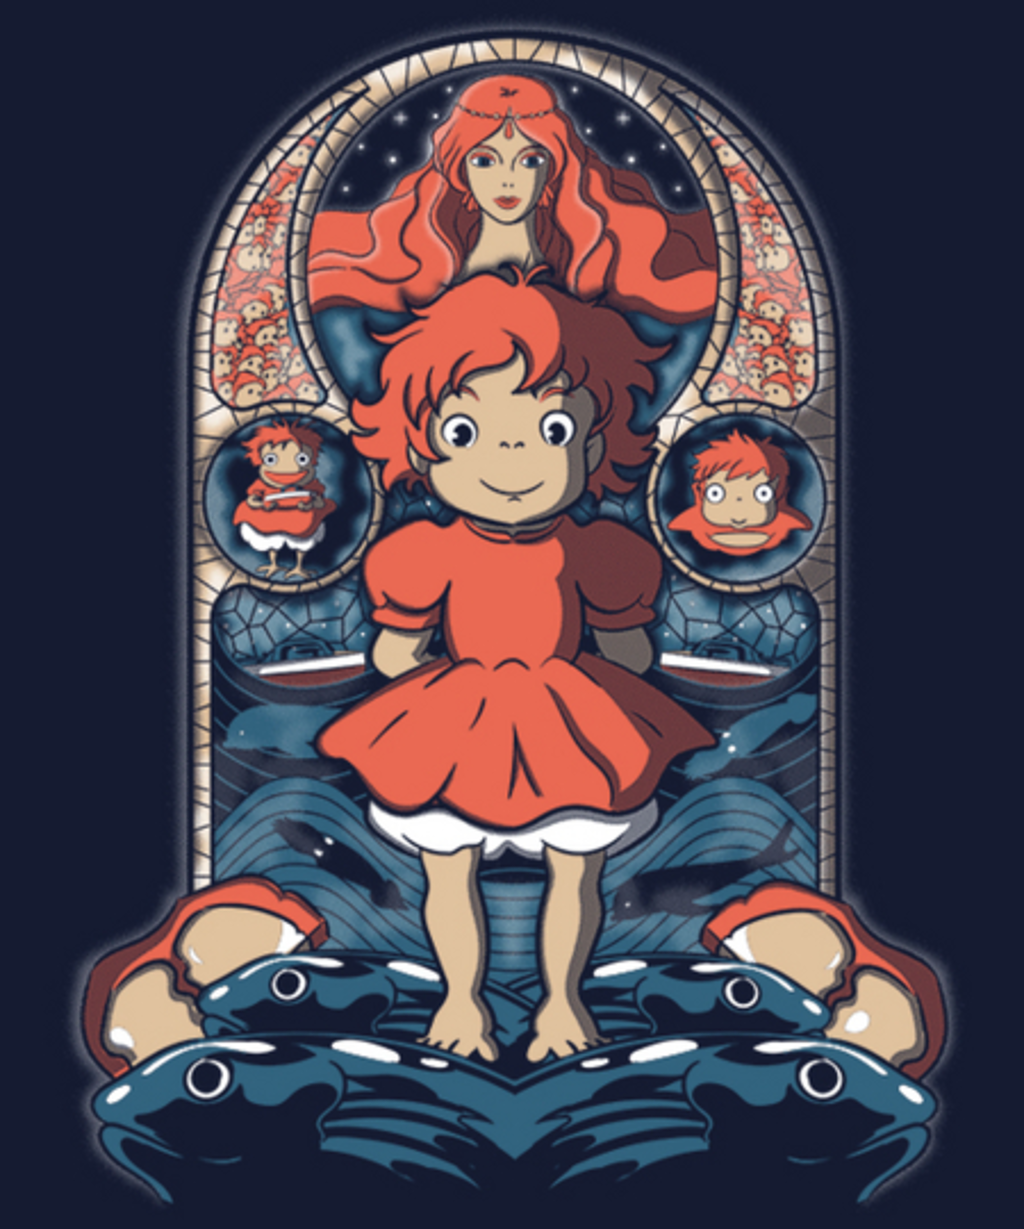 Qwertee: Ponyo in the window